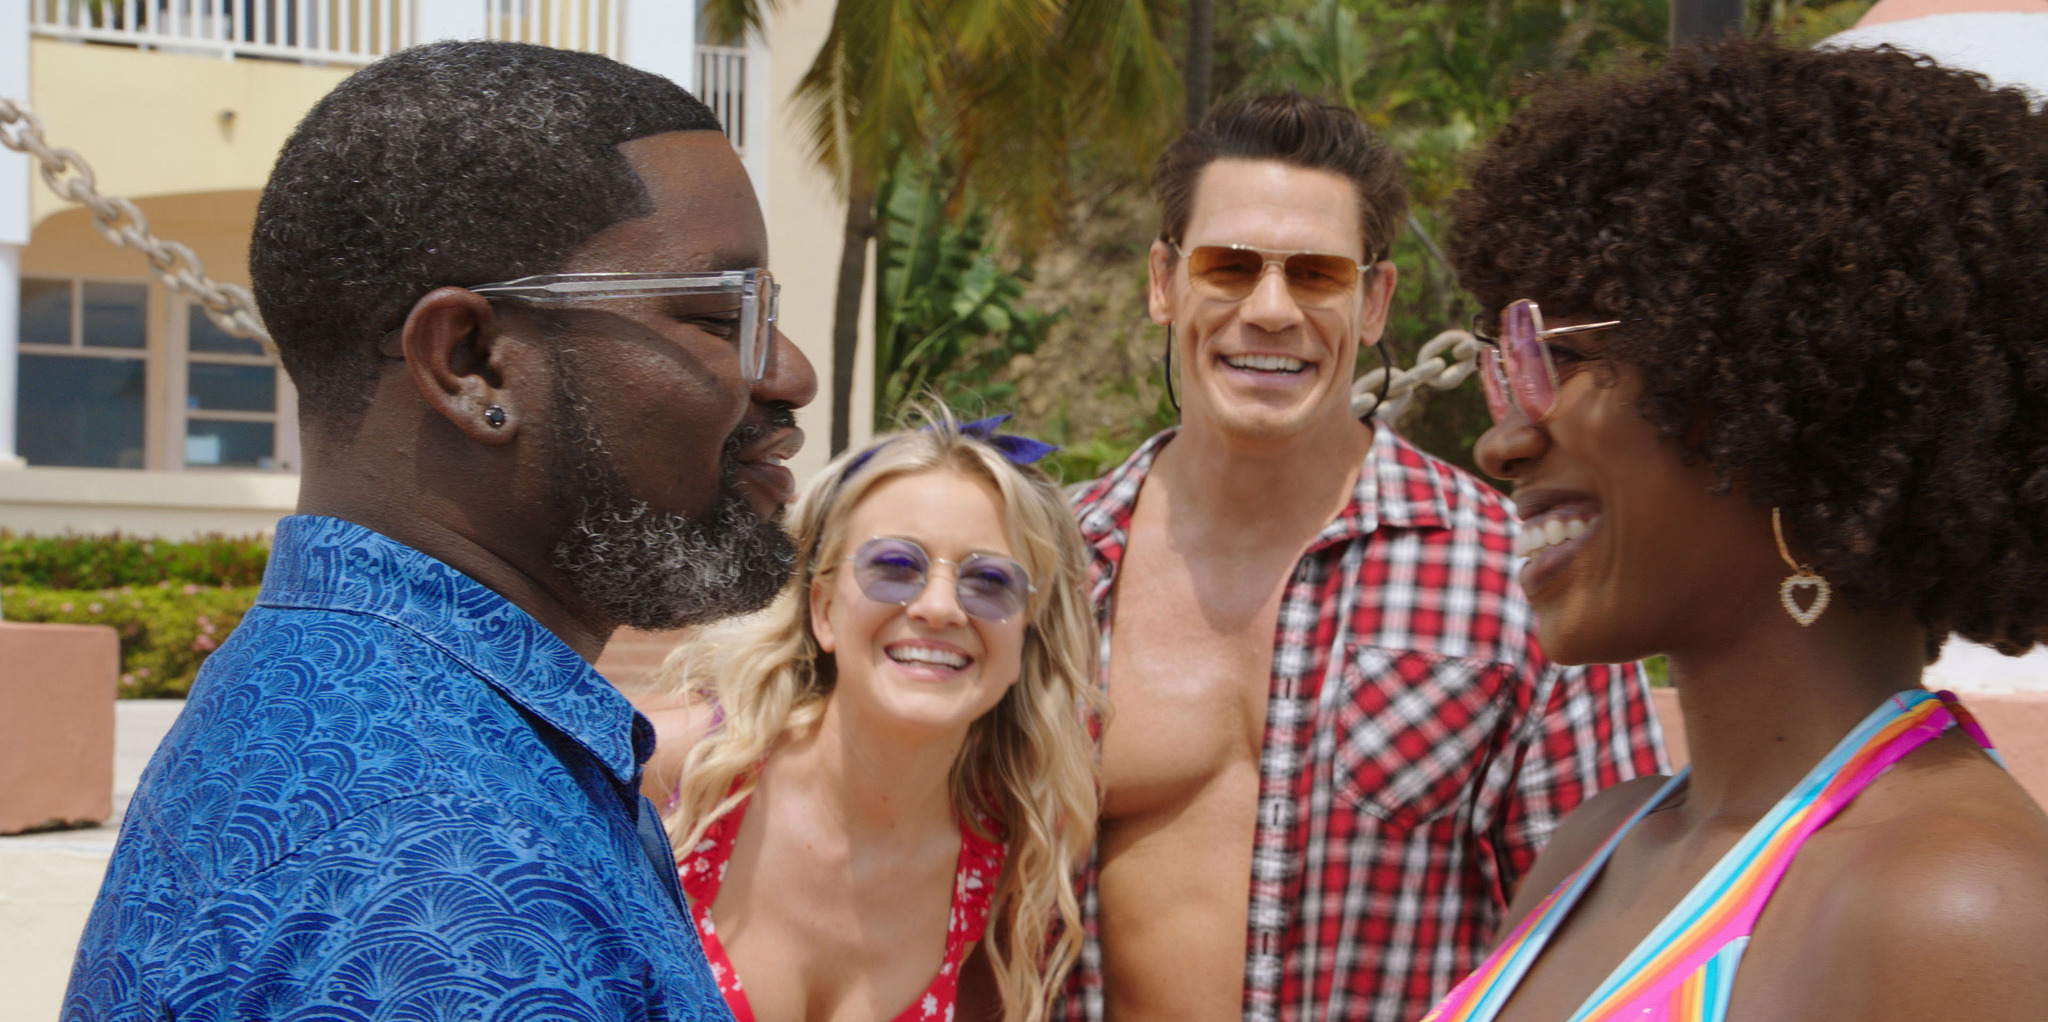 First Look Poster and Red Band Trailer for 'Vacation Friends' - Image 5